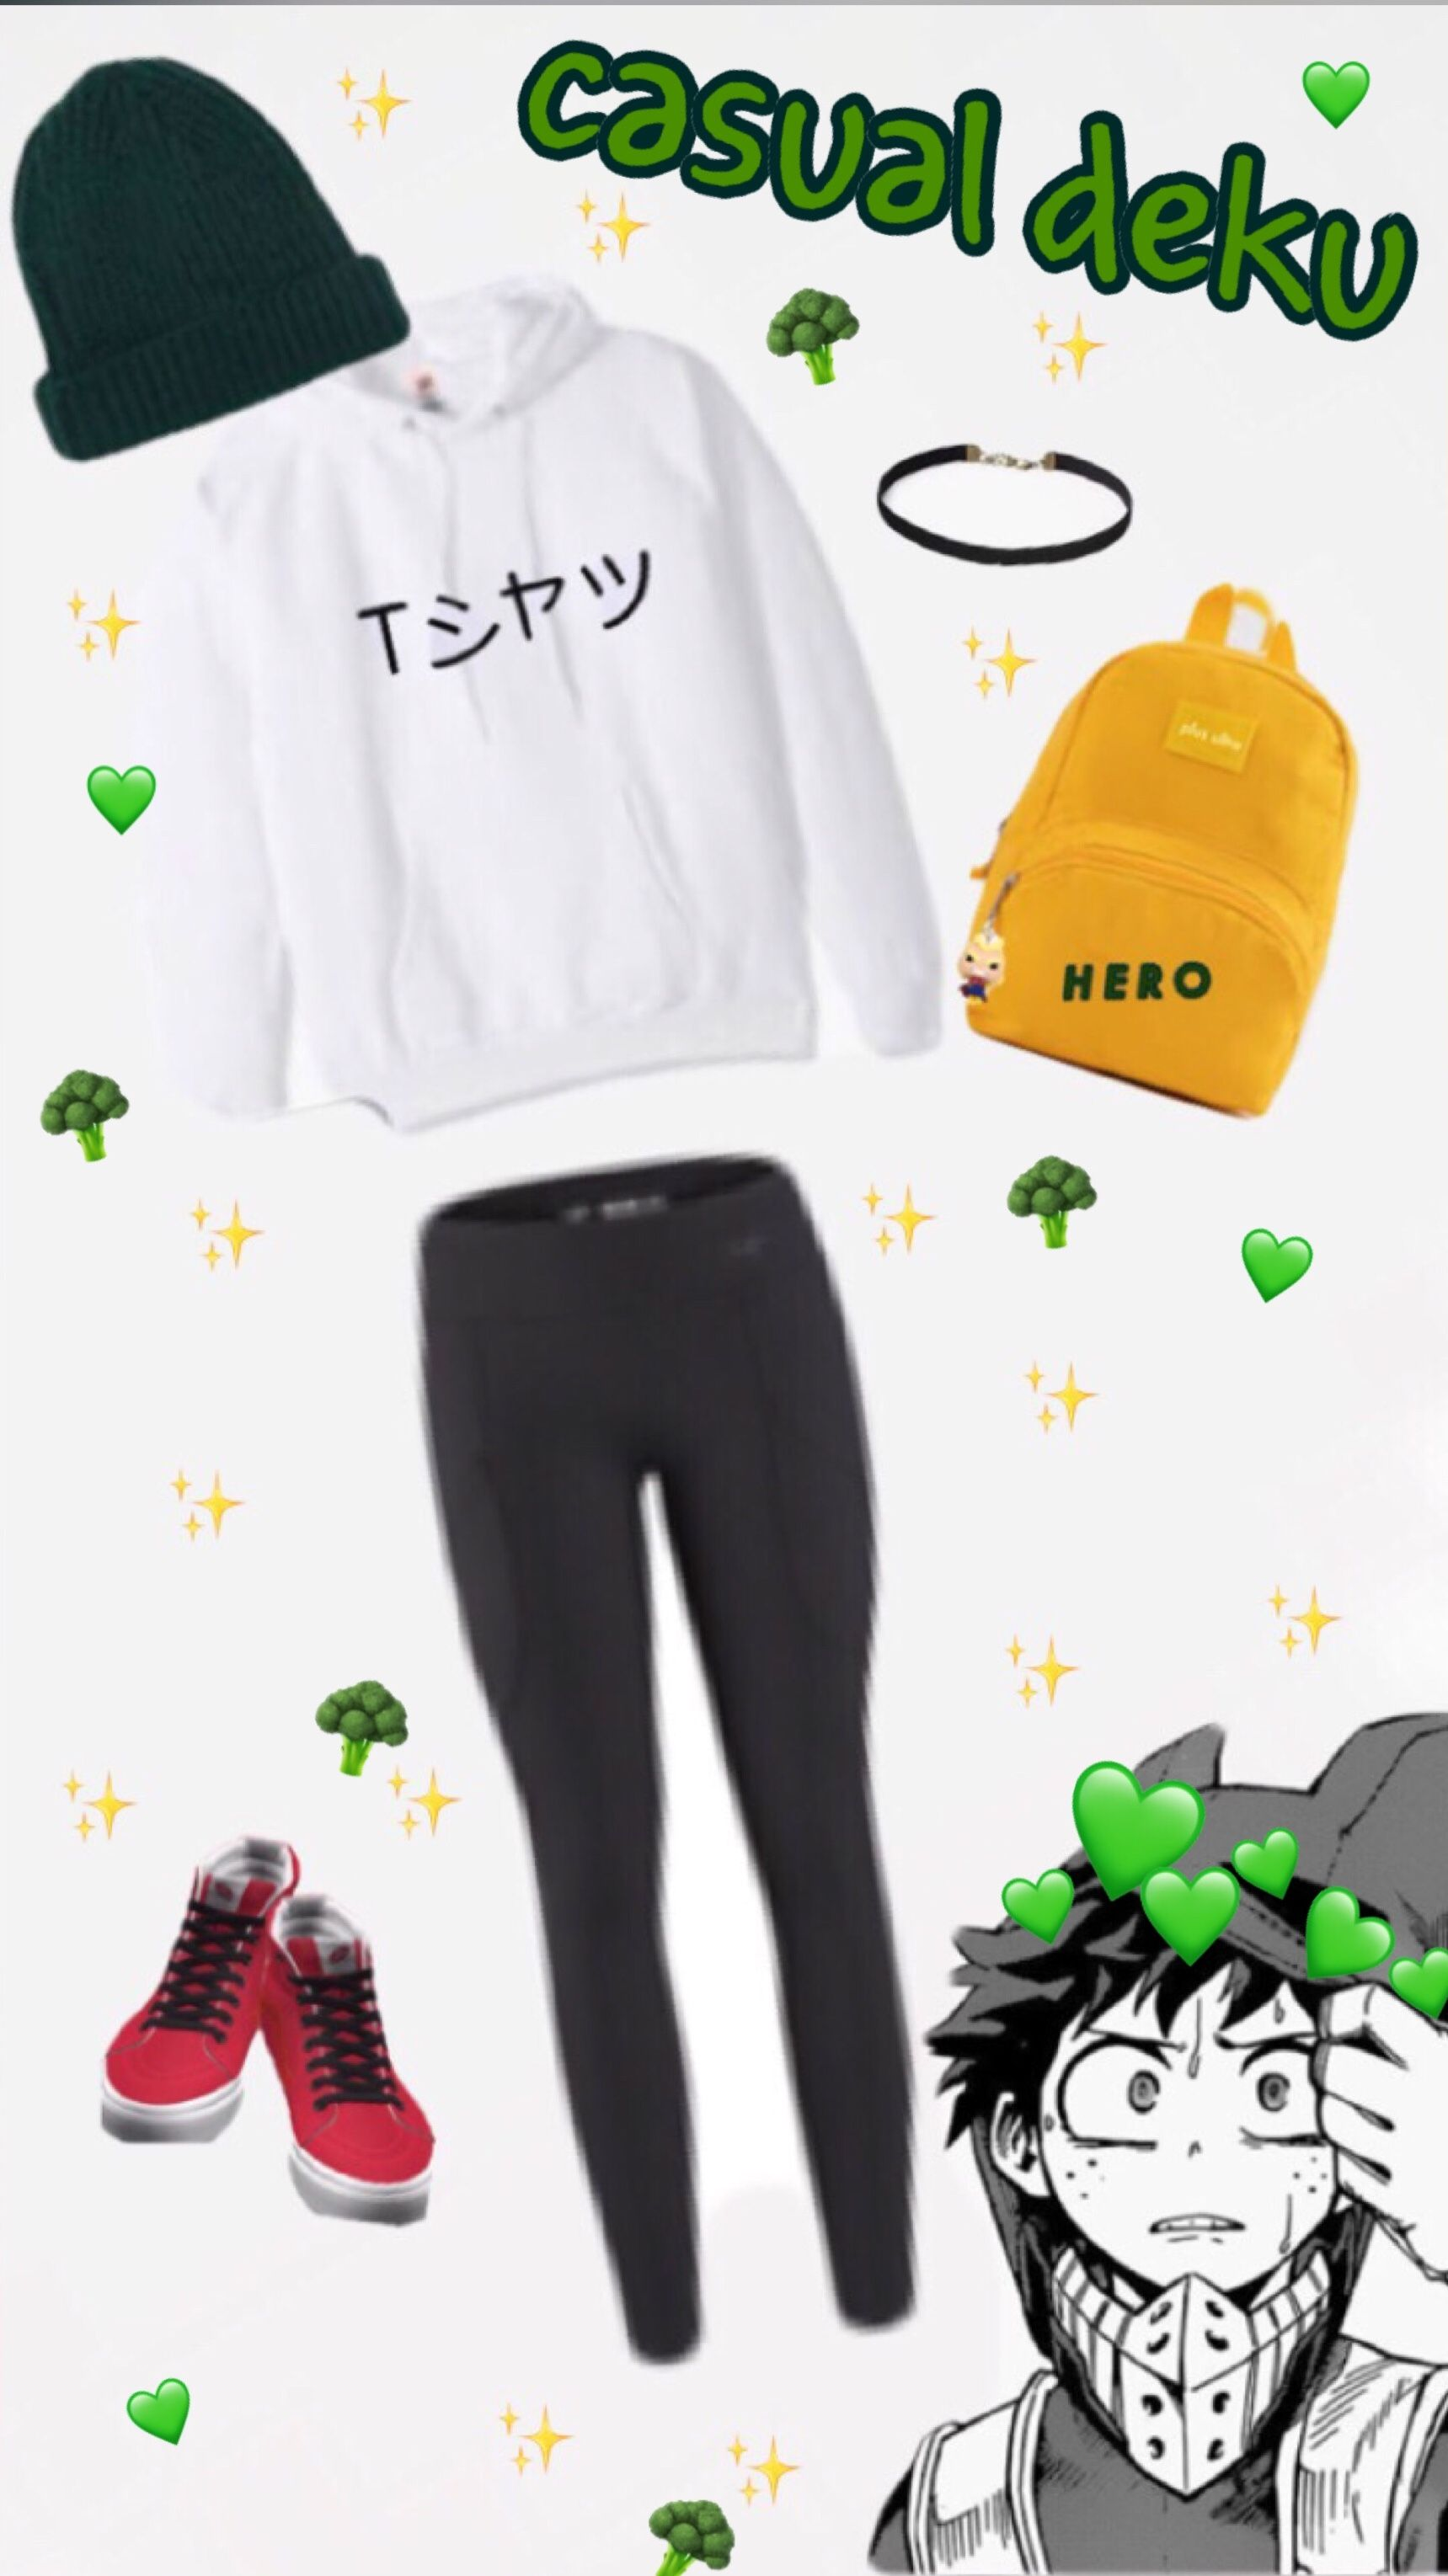 Casual Deku Anime Inspired Outfits Fandom Outfits Character Inspired Outfits